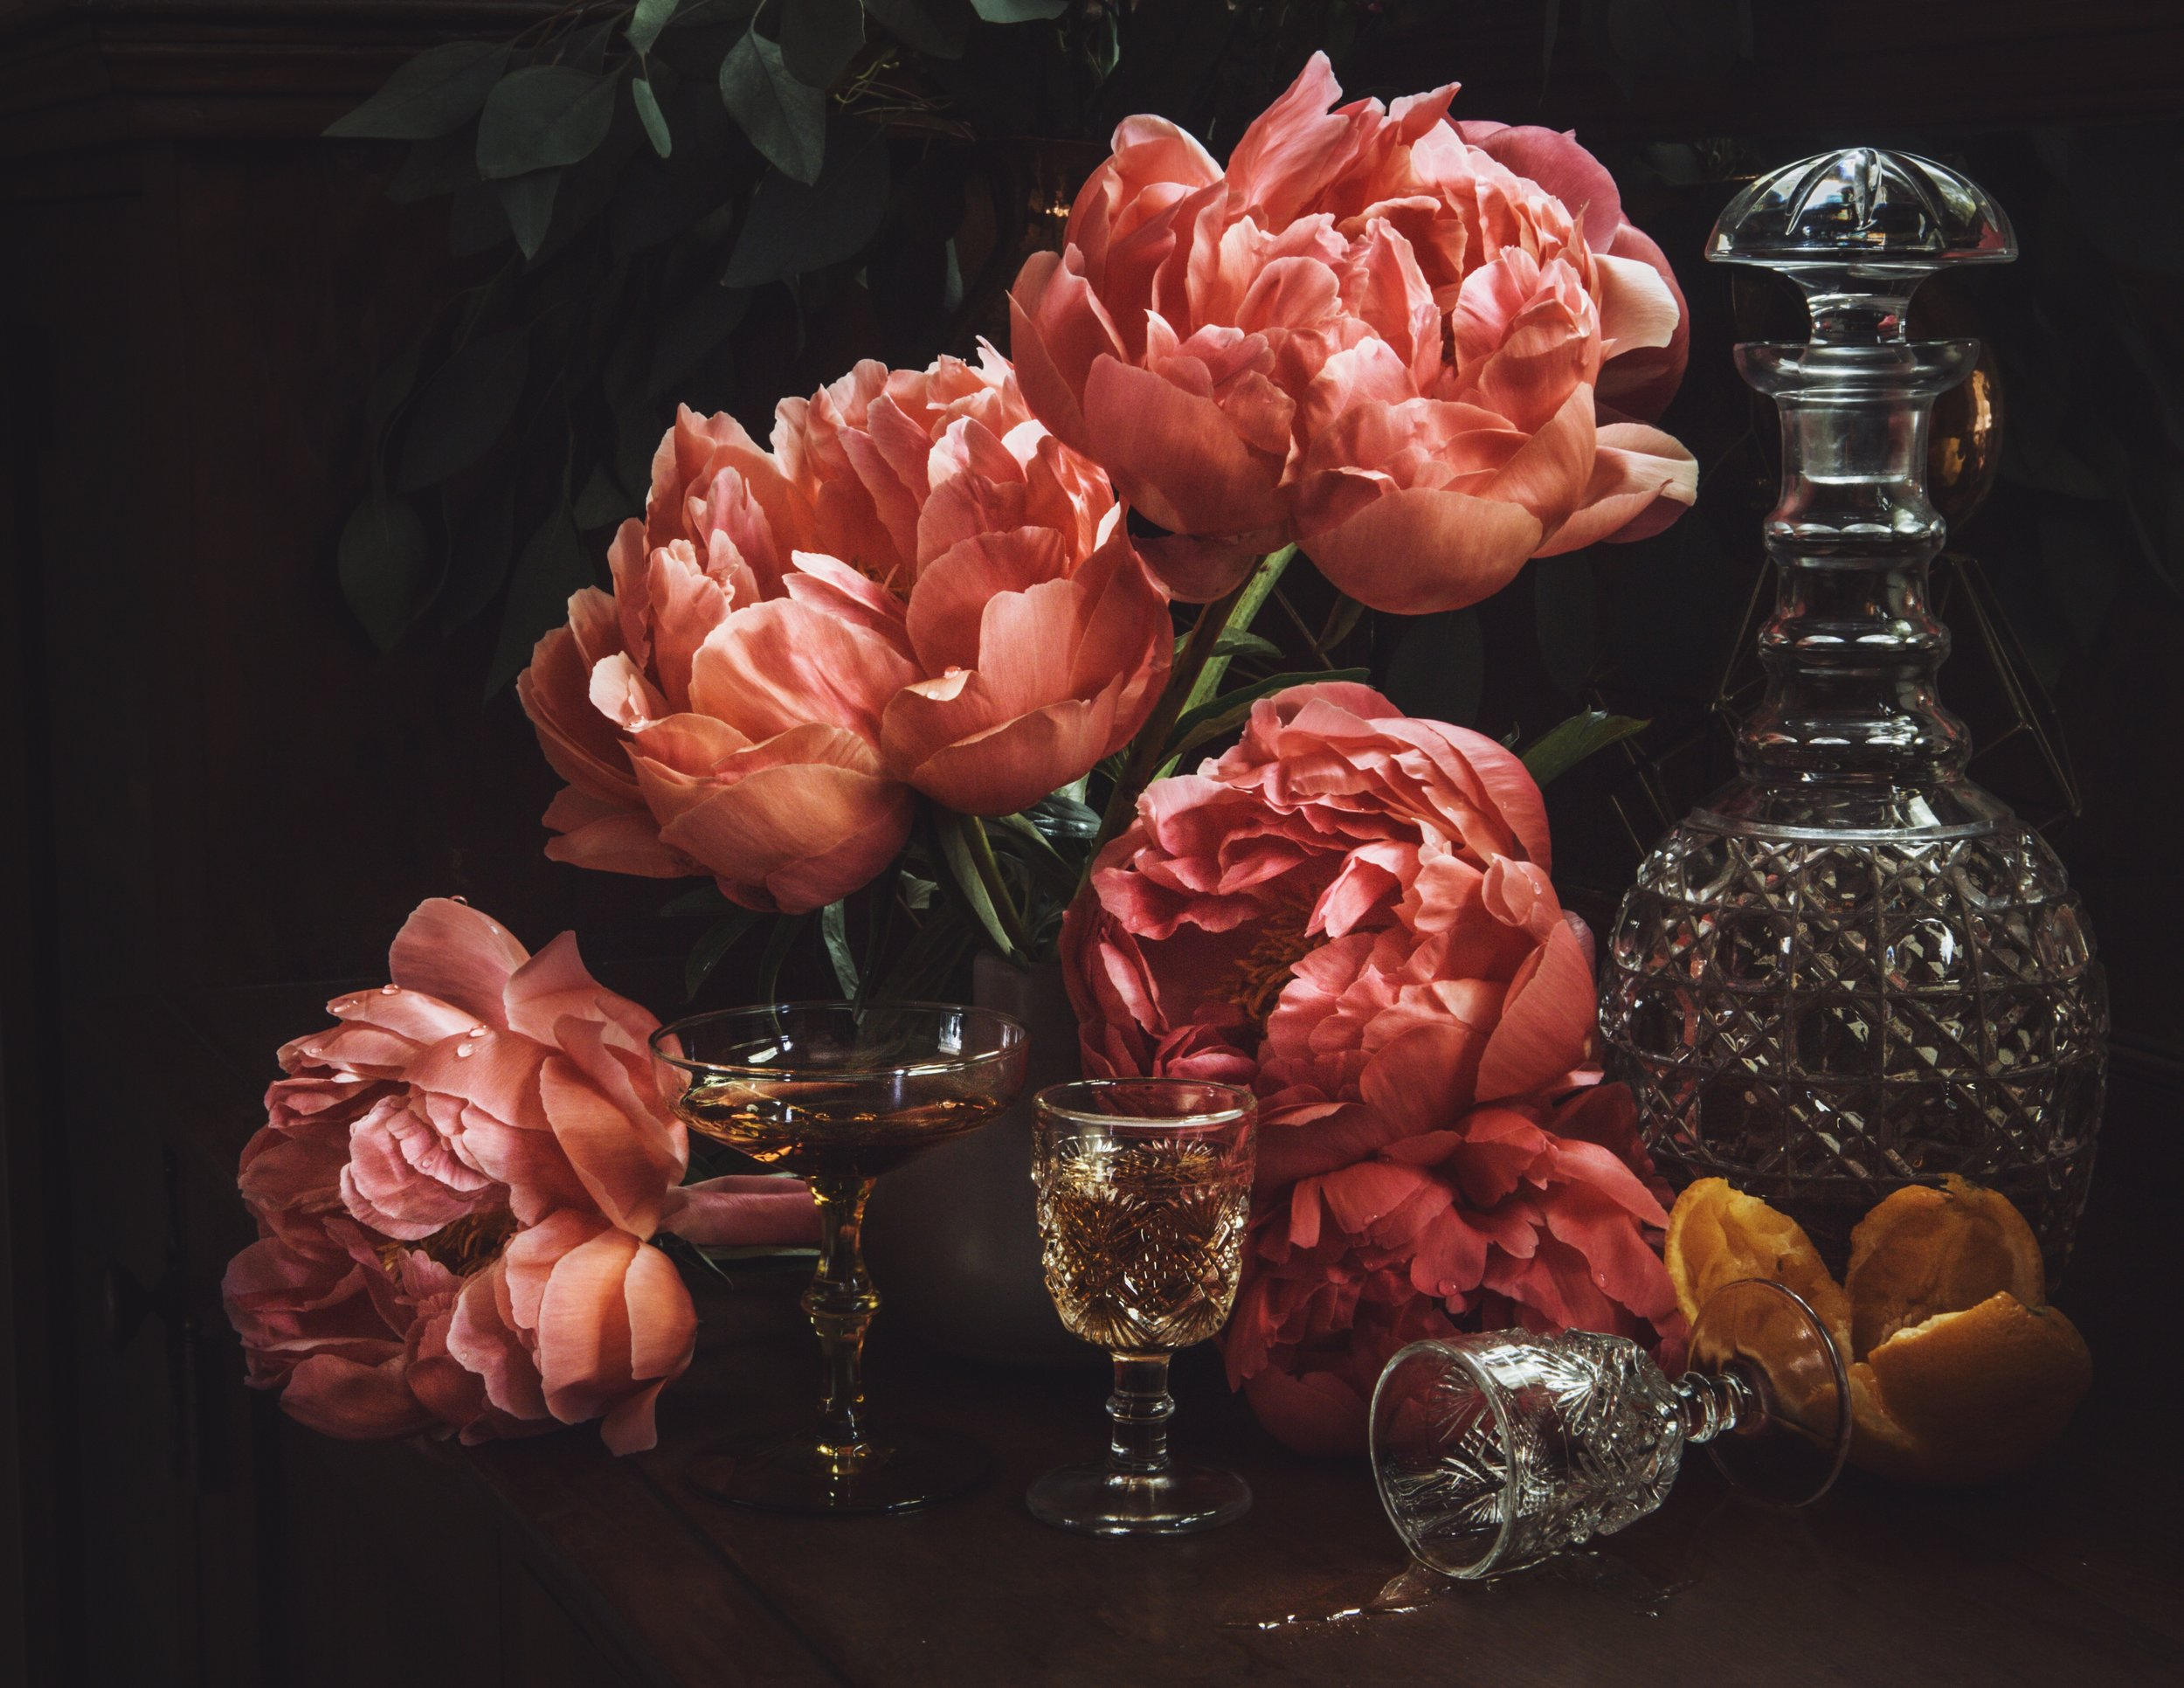 STILL LIFE WITH PEONIES |  2019